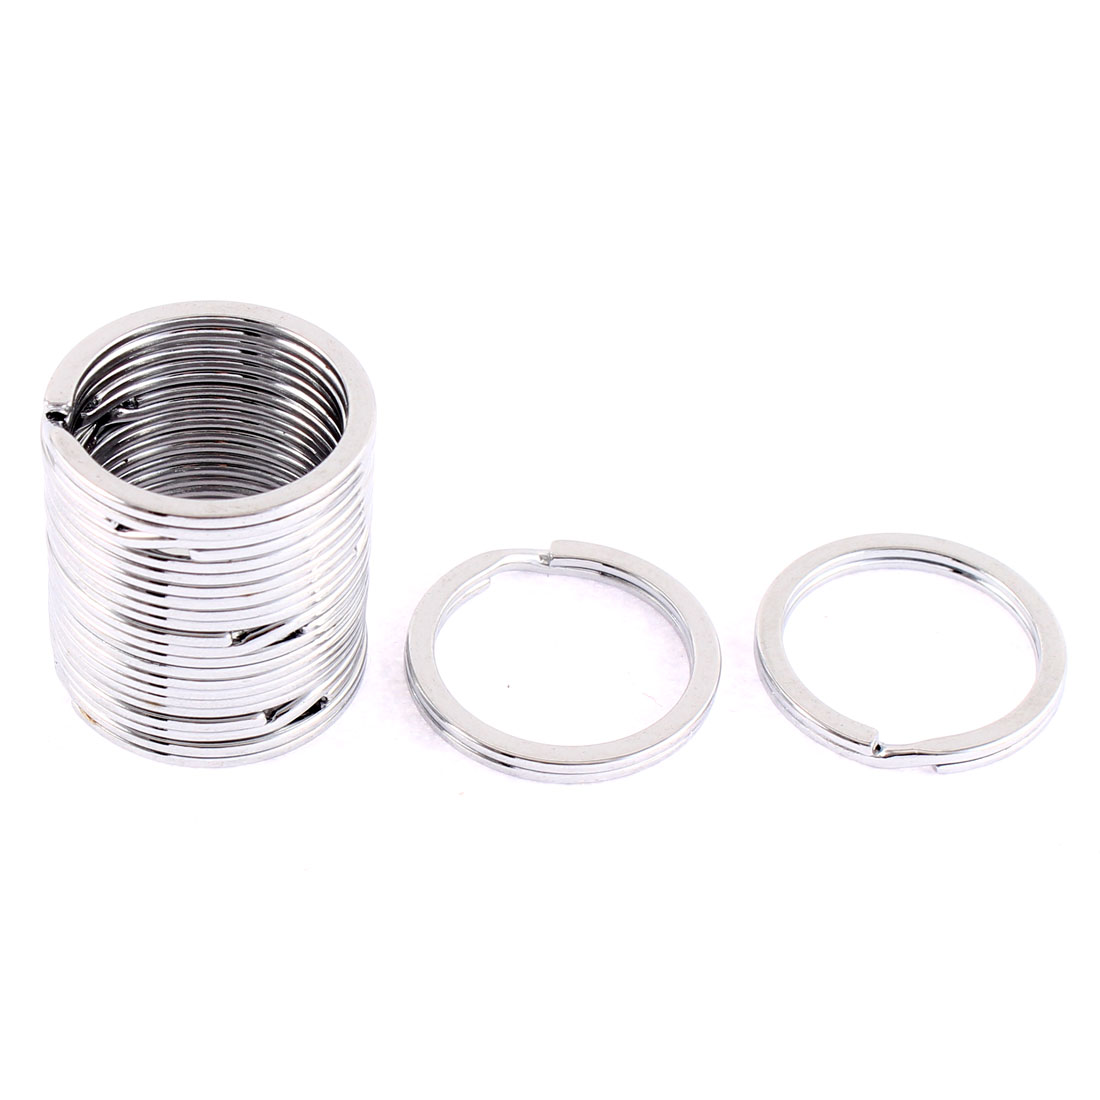 15 Pcs Metal Round Double Loop Split Keyring Keychain 25mm Outside Dia